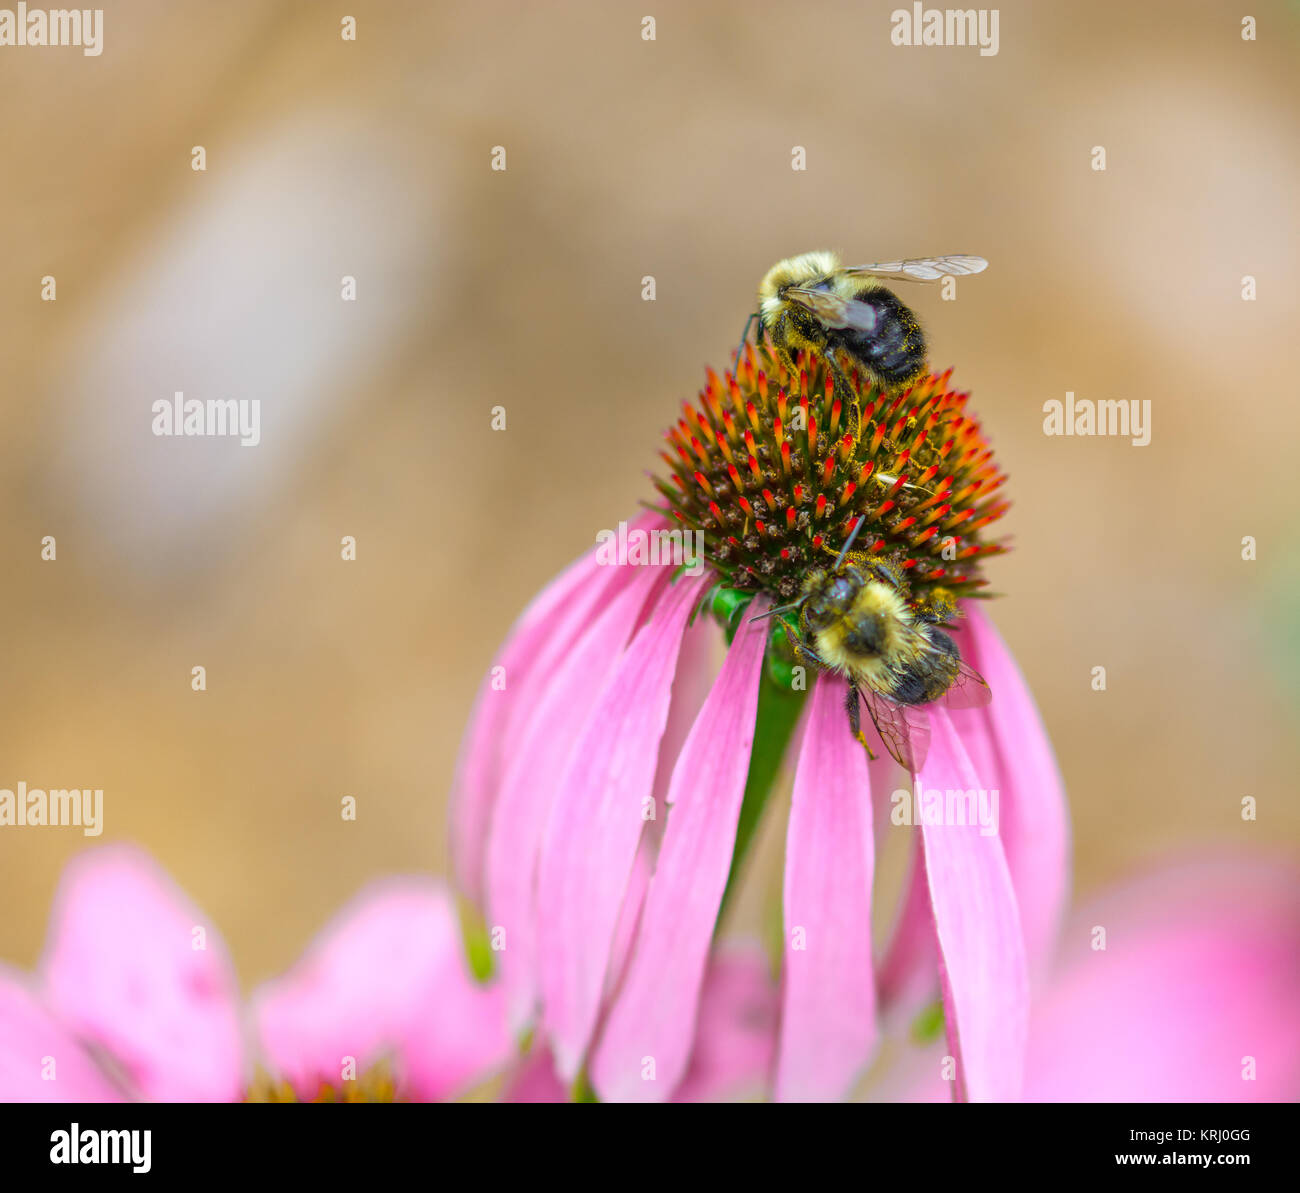 Common Eastern Bumble Bees on Echinacea Flower - Stock Image